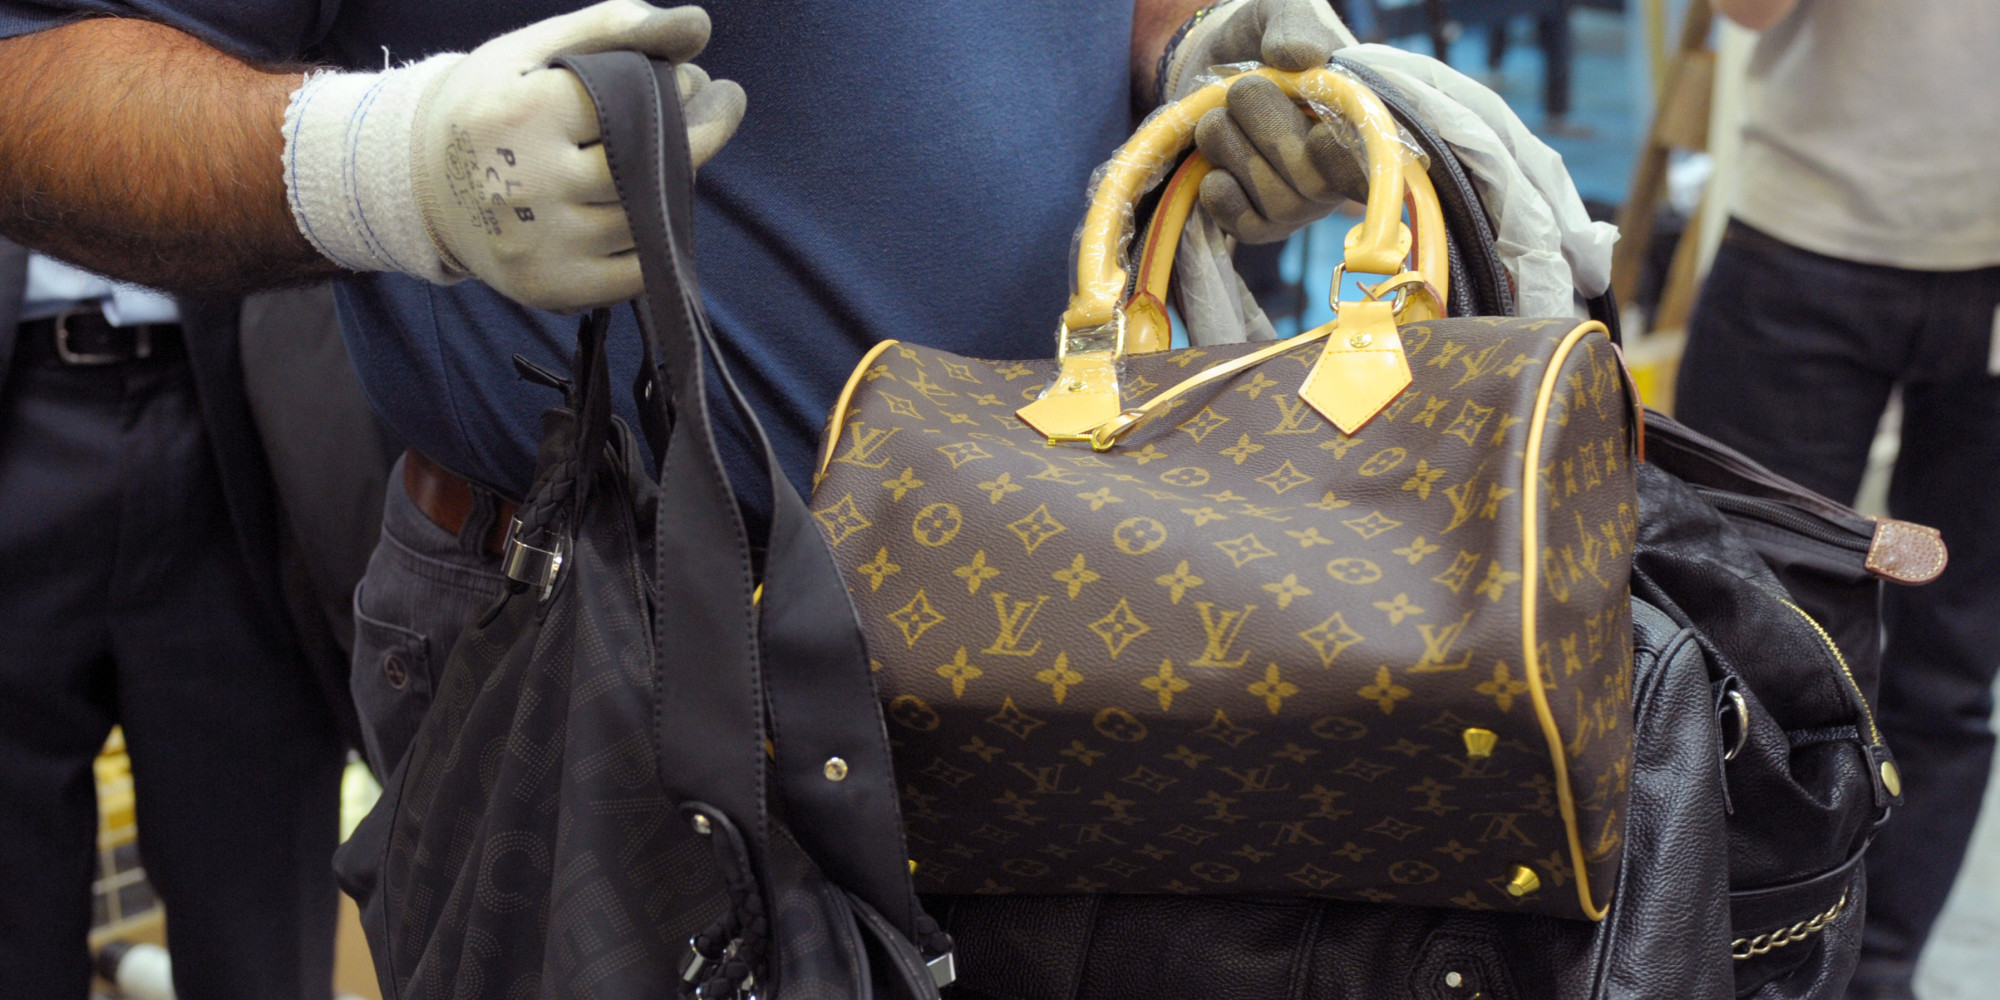 celine designer handbags - How To Spot A Fake Bag? Check The Leather, The Stitching... And ...